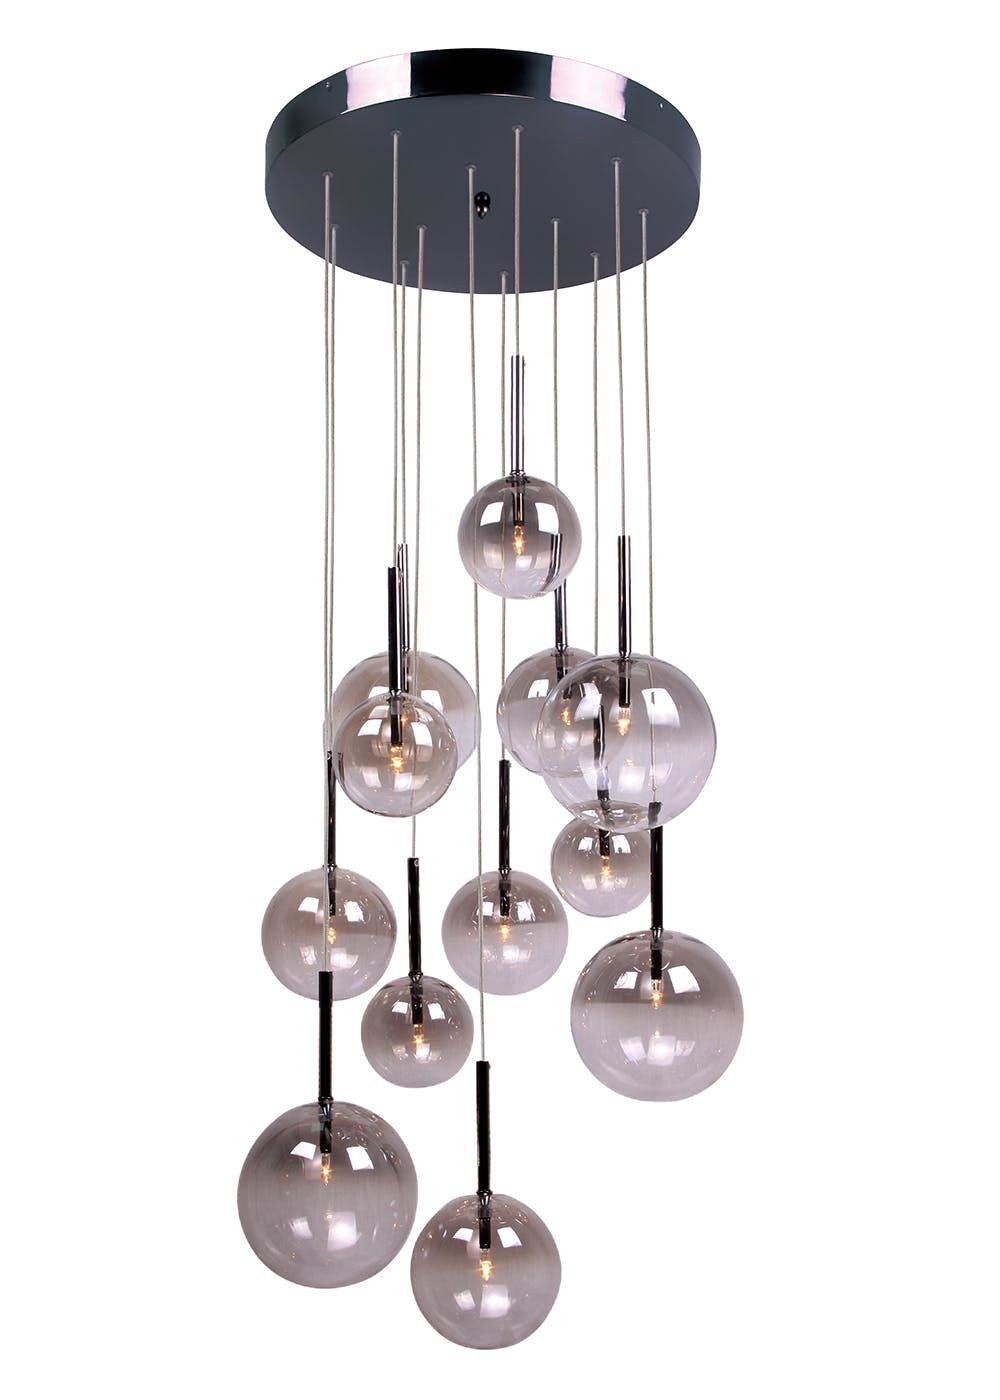 417a043e1166 Illuminate your living space in style with this striking bubble cascade cluster  pendant. Providing an interesting staggered height range, this statement.